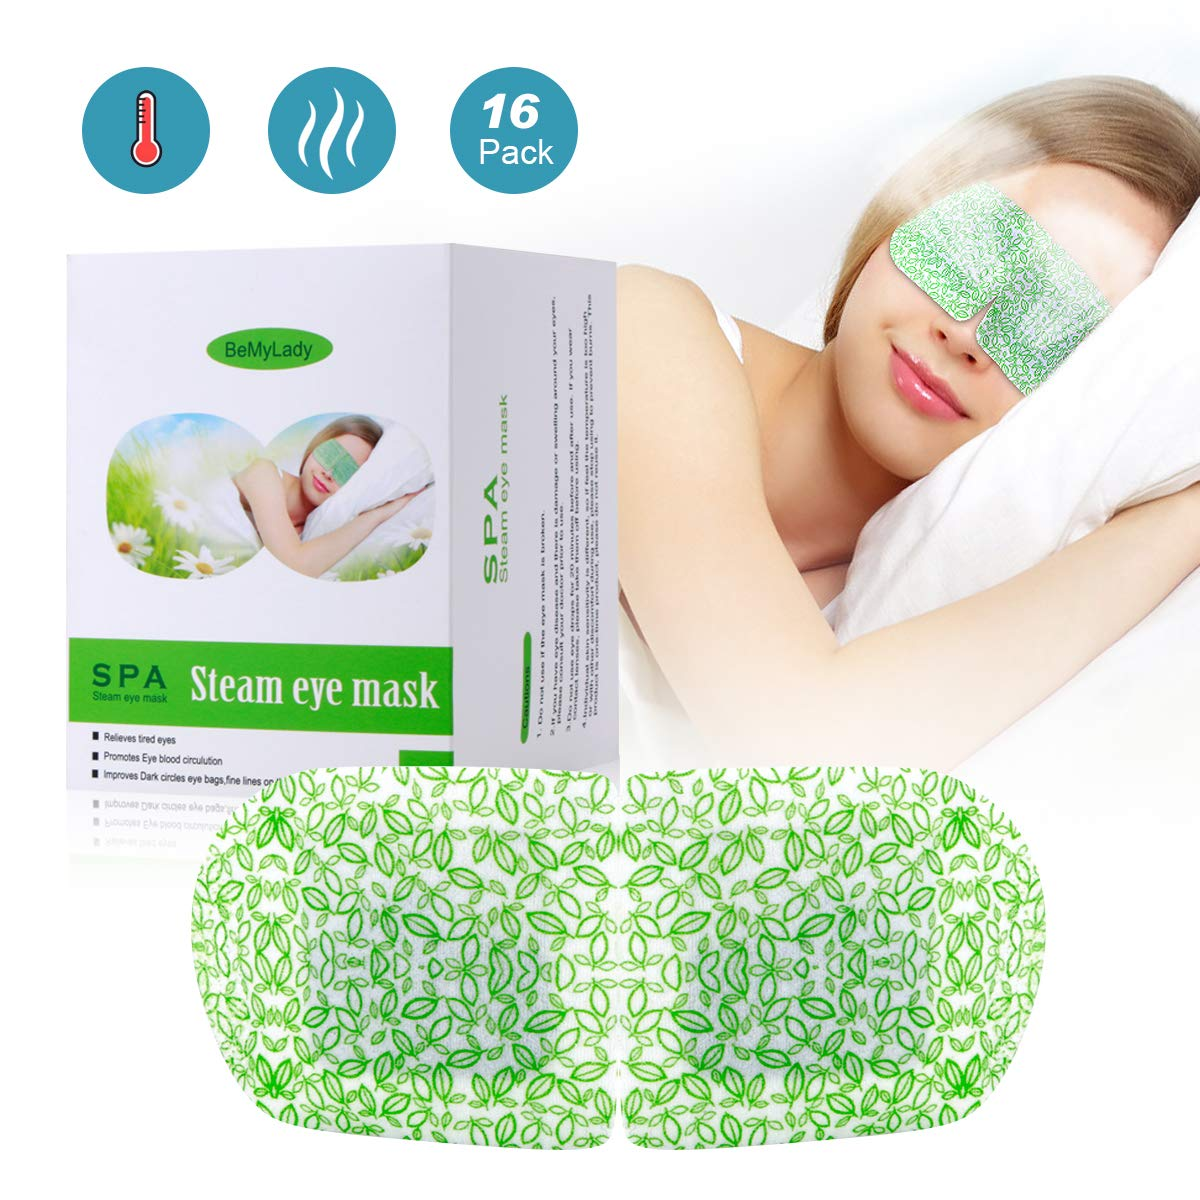 Bliss for eyes - wonderful eye mask